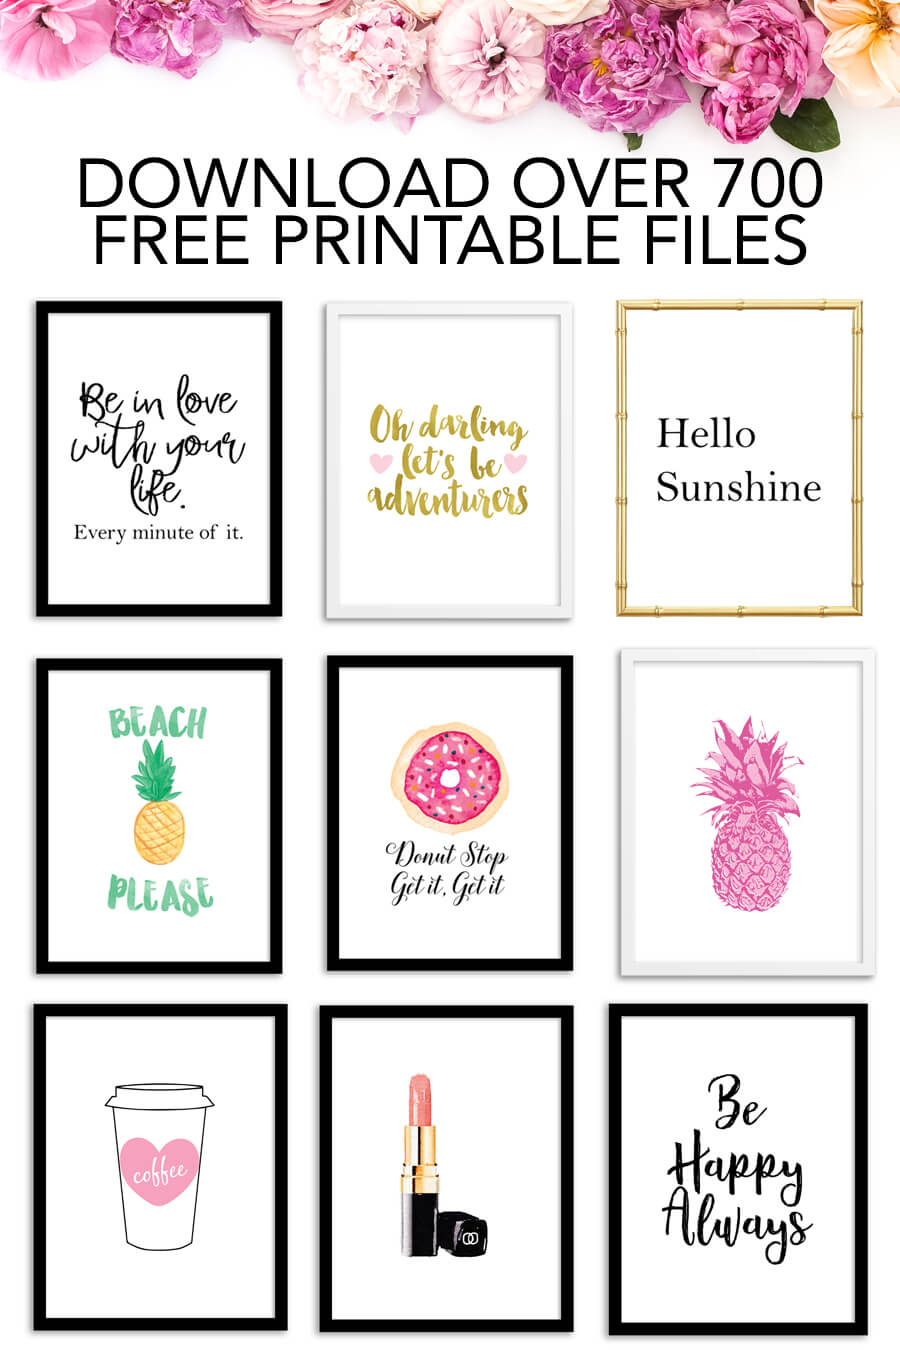 Download Over 700 FREE Printable Files